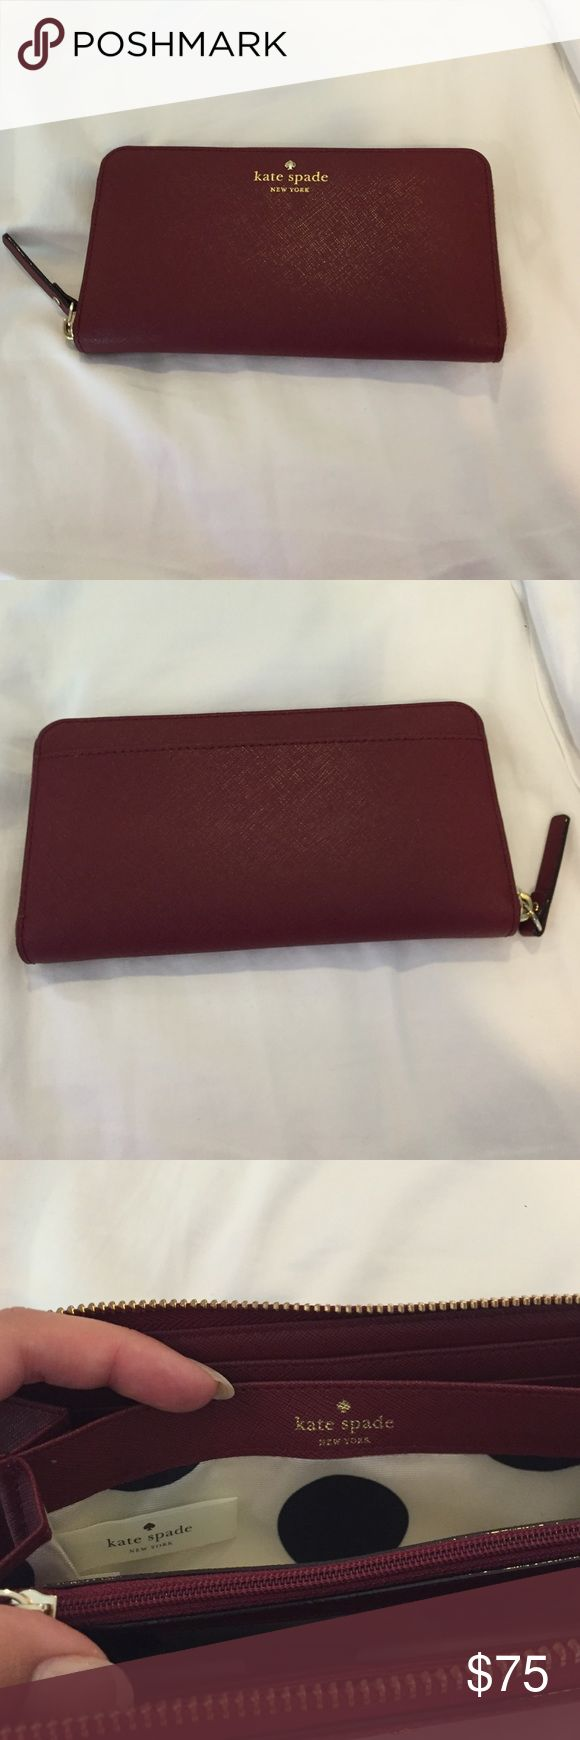 Kate Spade Cedar Street Lacy Wallet Color is a maroon color. It is in great condition. And goes with a lot more handbags than one would think. kate spade Bags Wallets